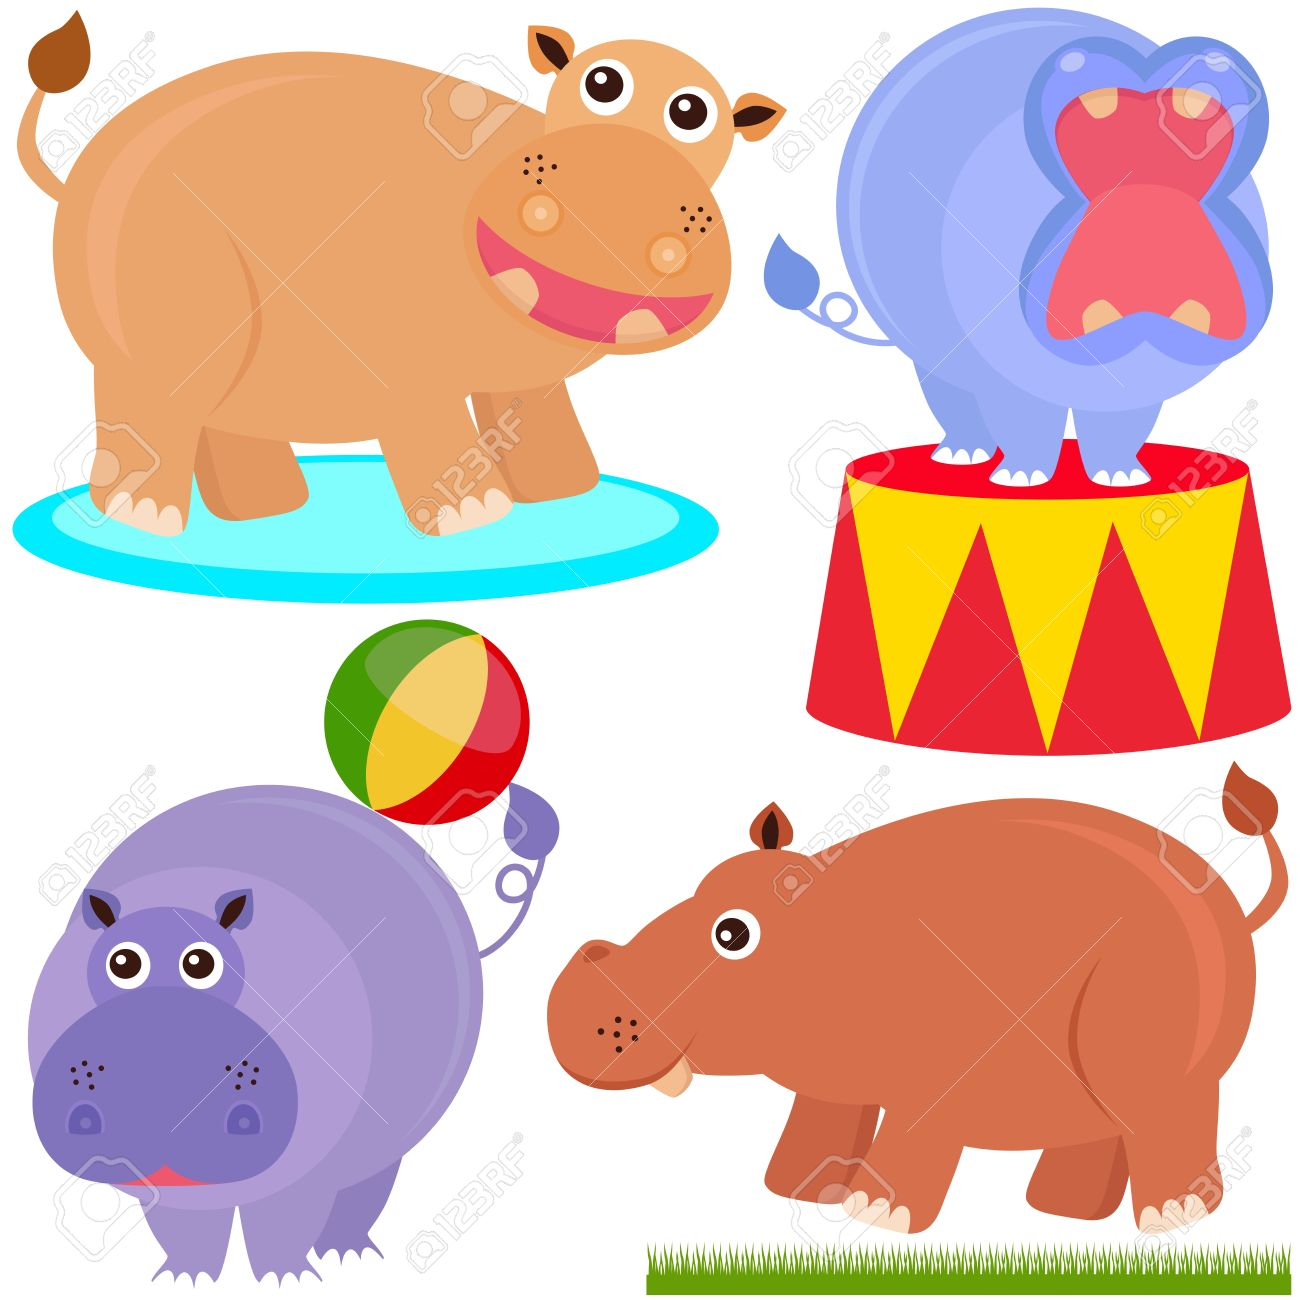 hight resolution of 1300x1300 hippo clipart circus free collection download and share hippo